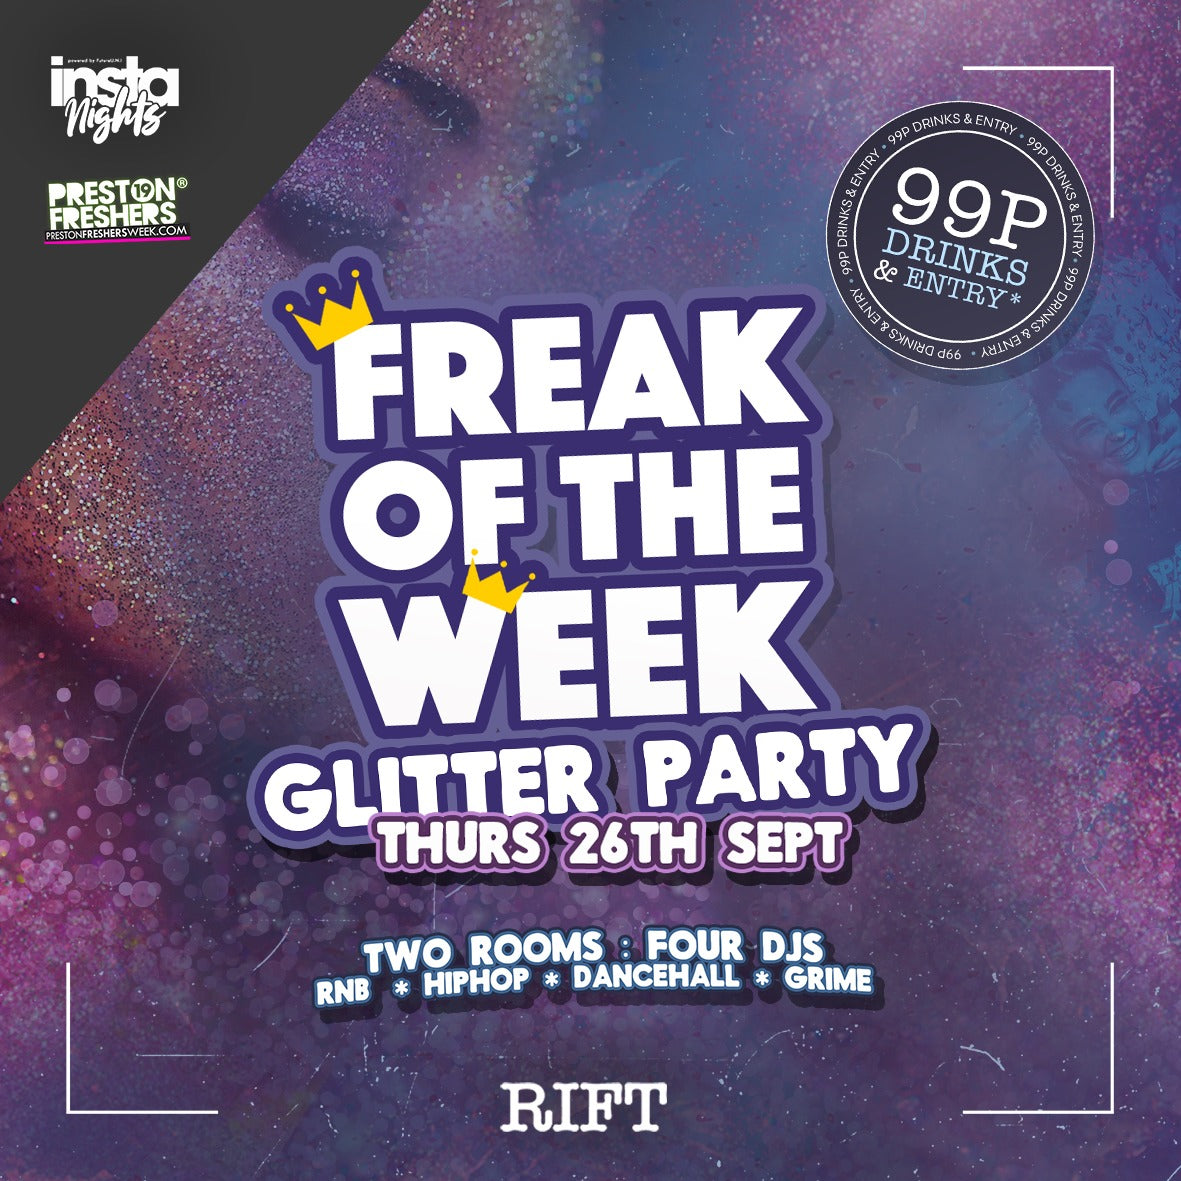 Freak Of The Week Glitter Party - 26th Sep